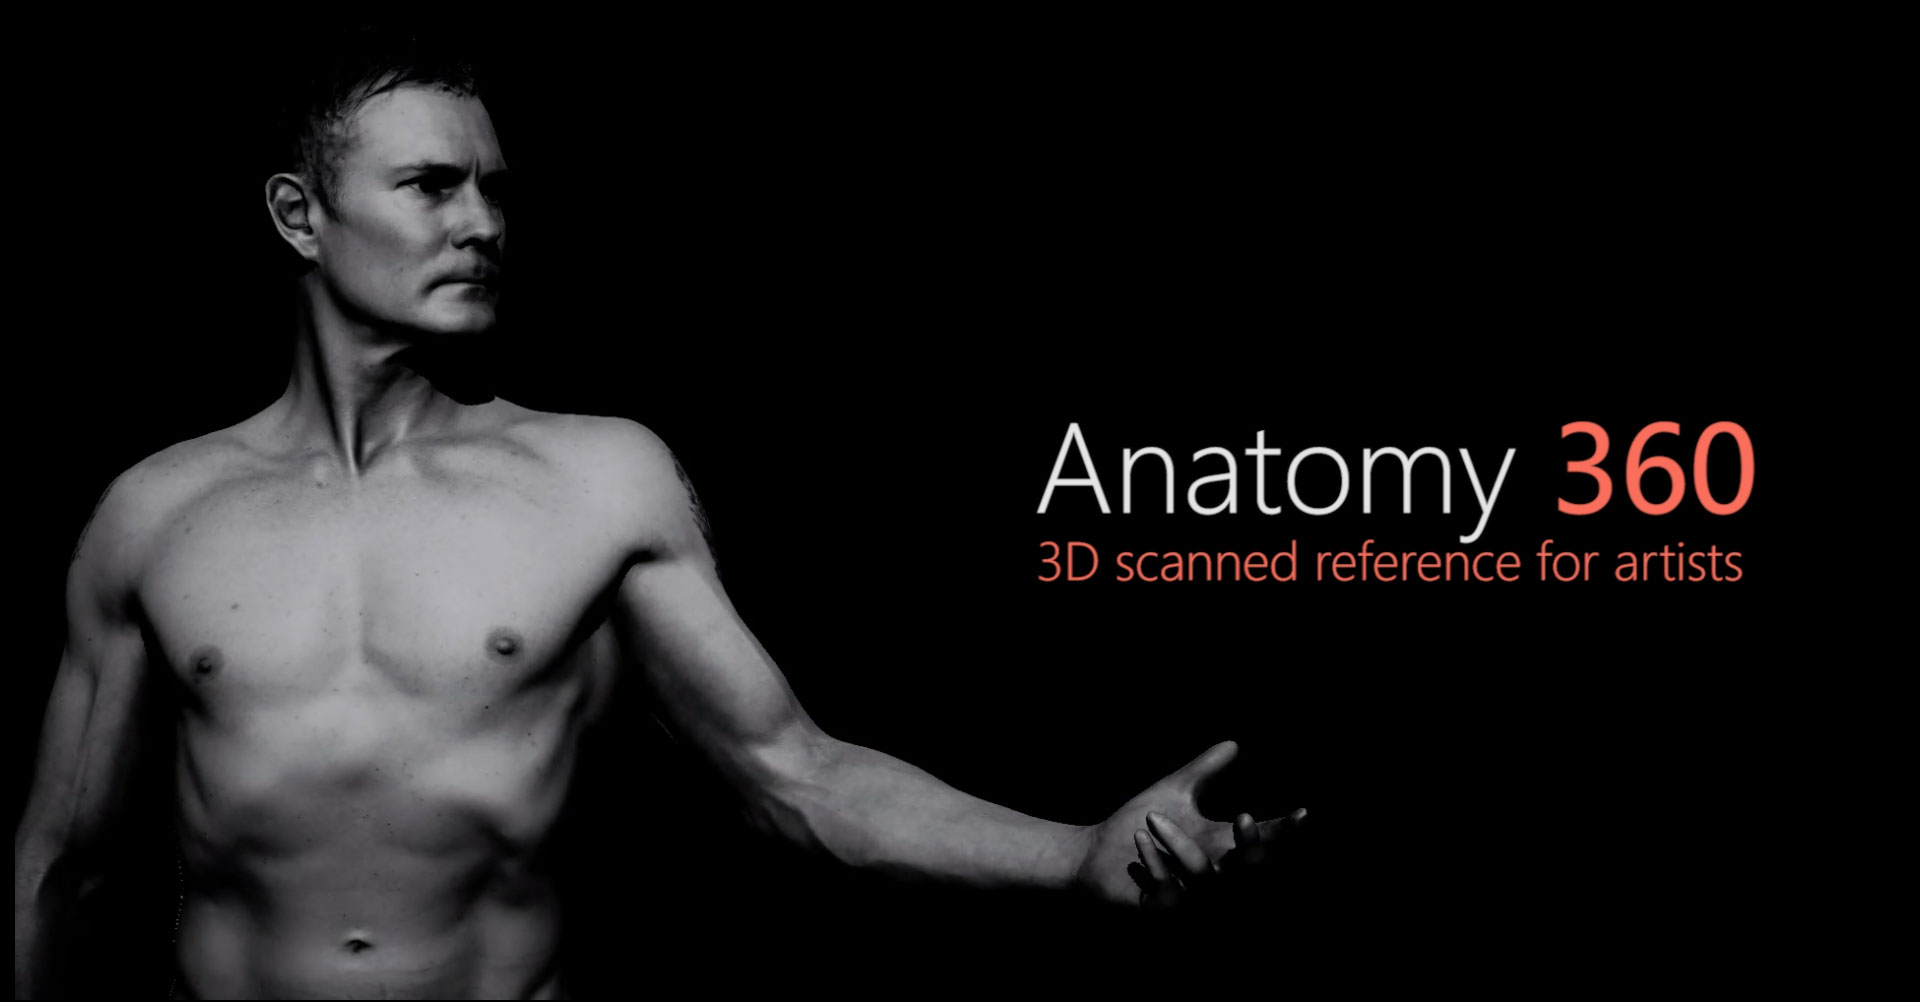 Anatomy 360 | Real 3D reference for artists